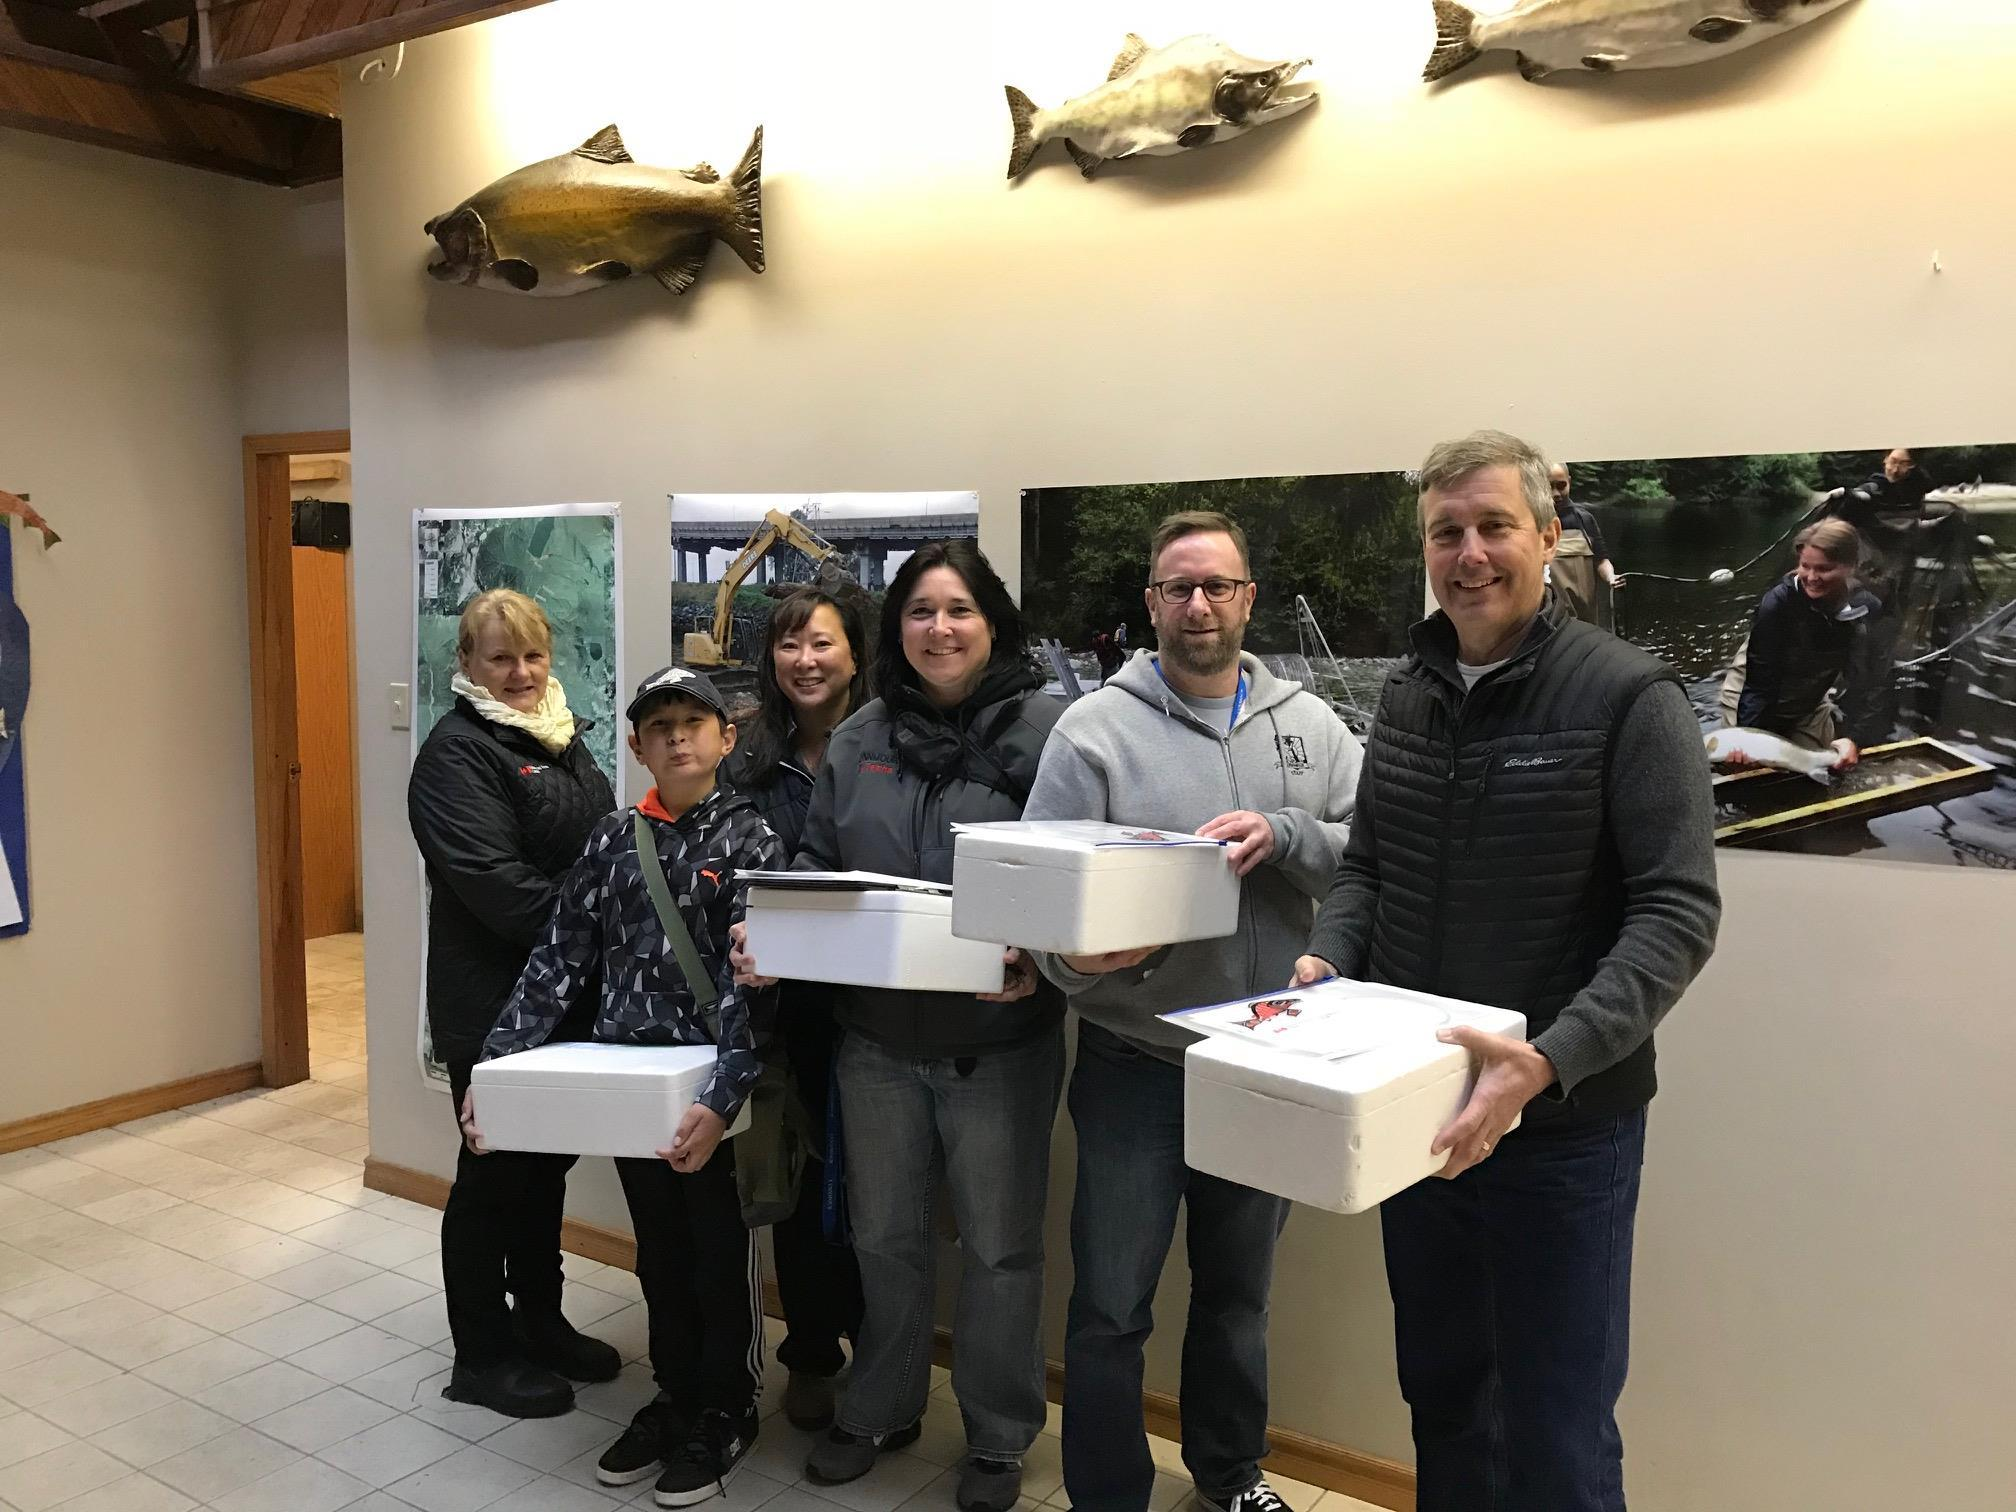 NVSD Salmon delivery team.jpg